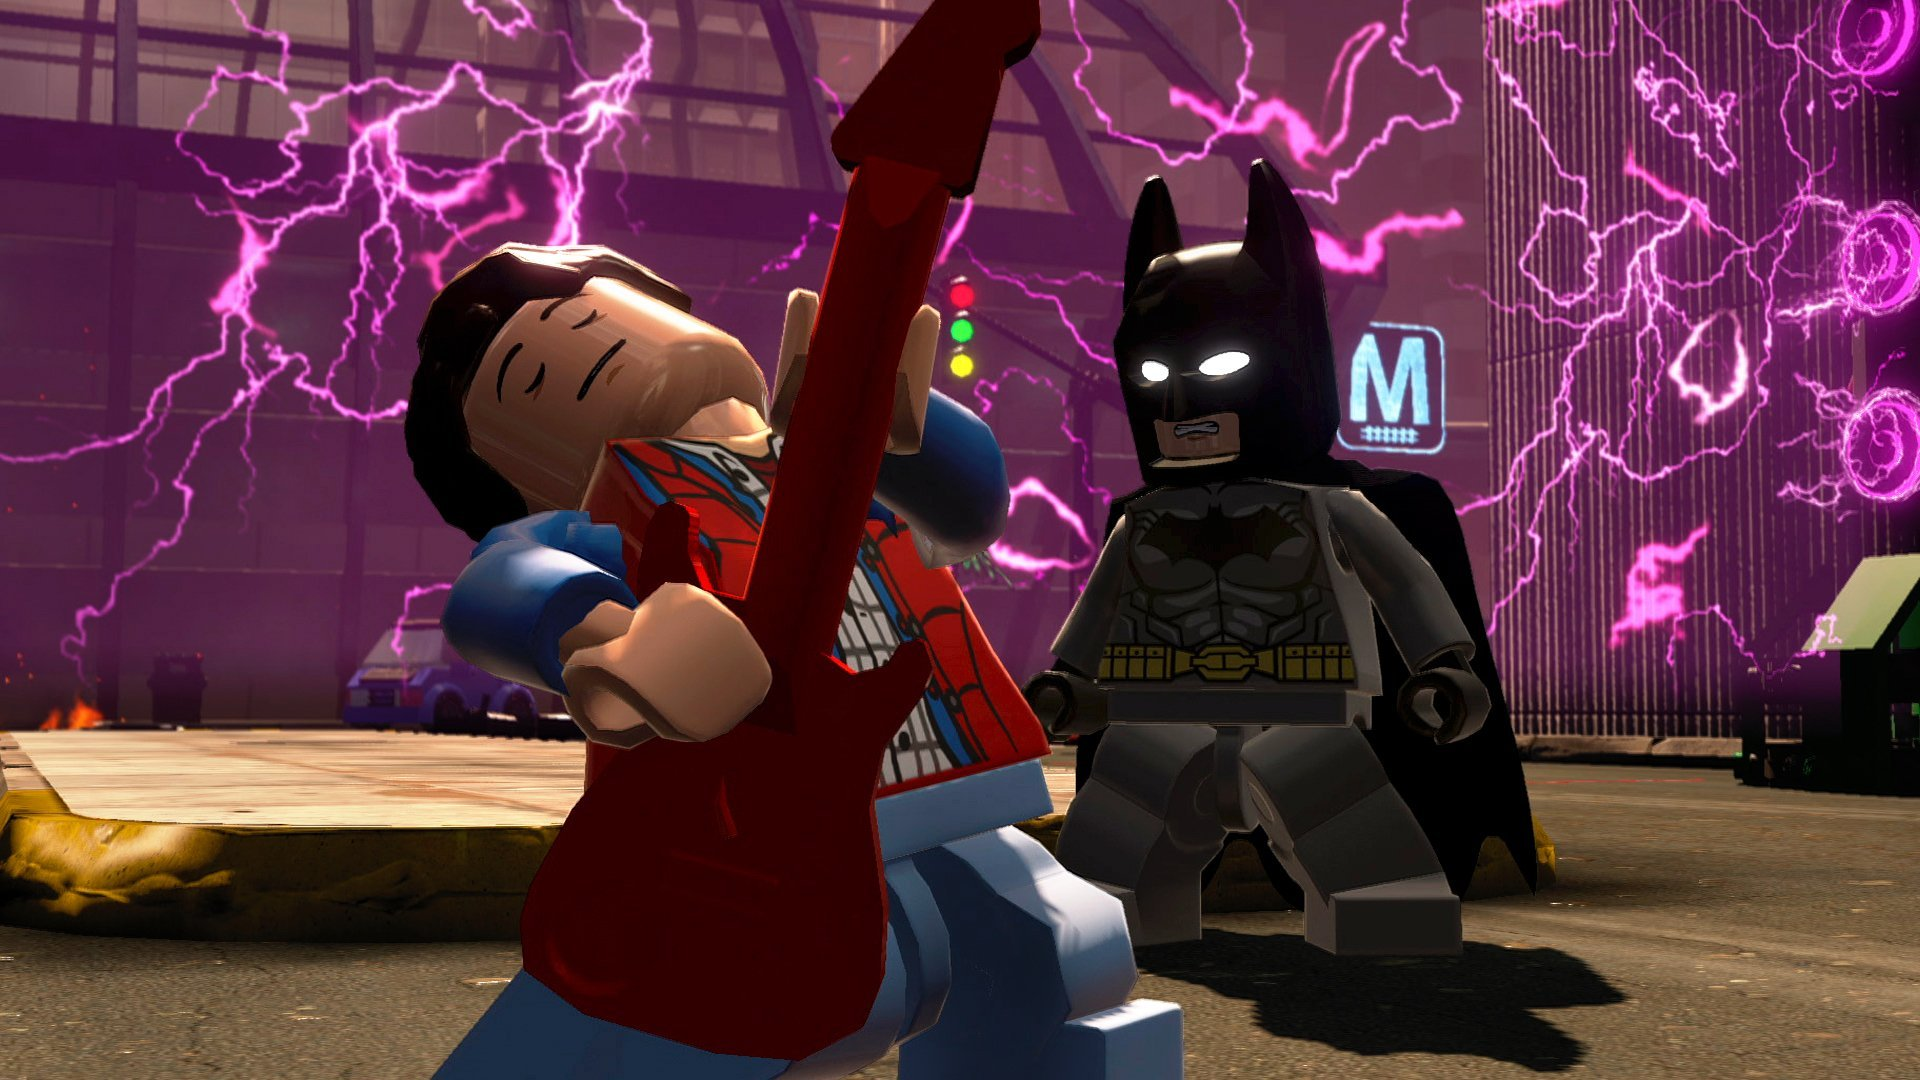 LEGO Dimensions Ends With No More Expansion Packs In The Works